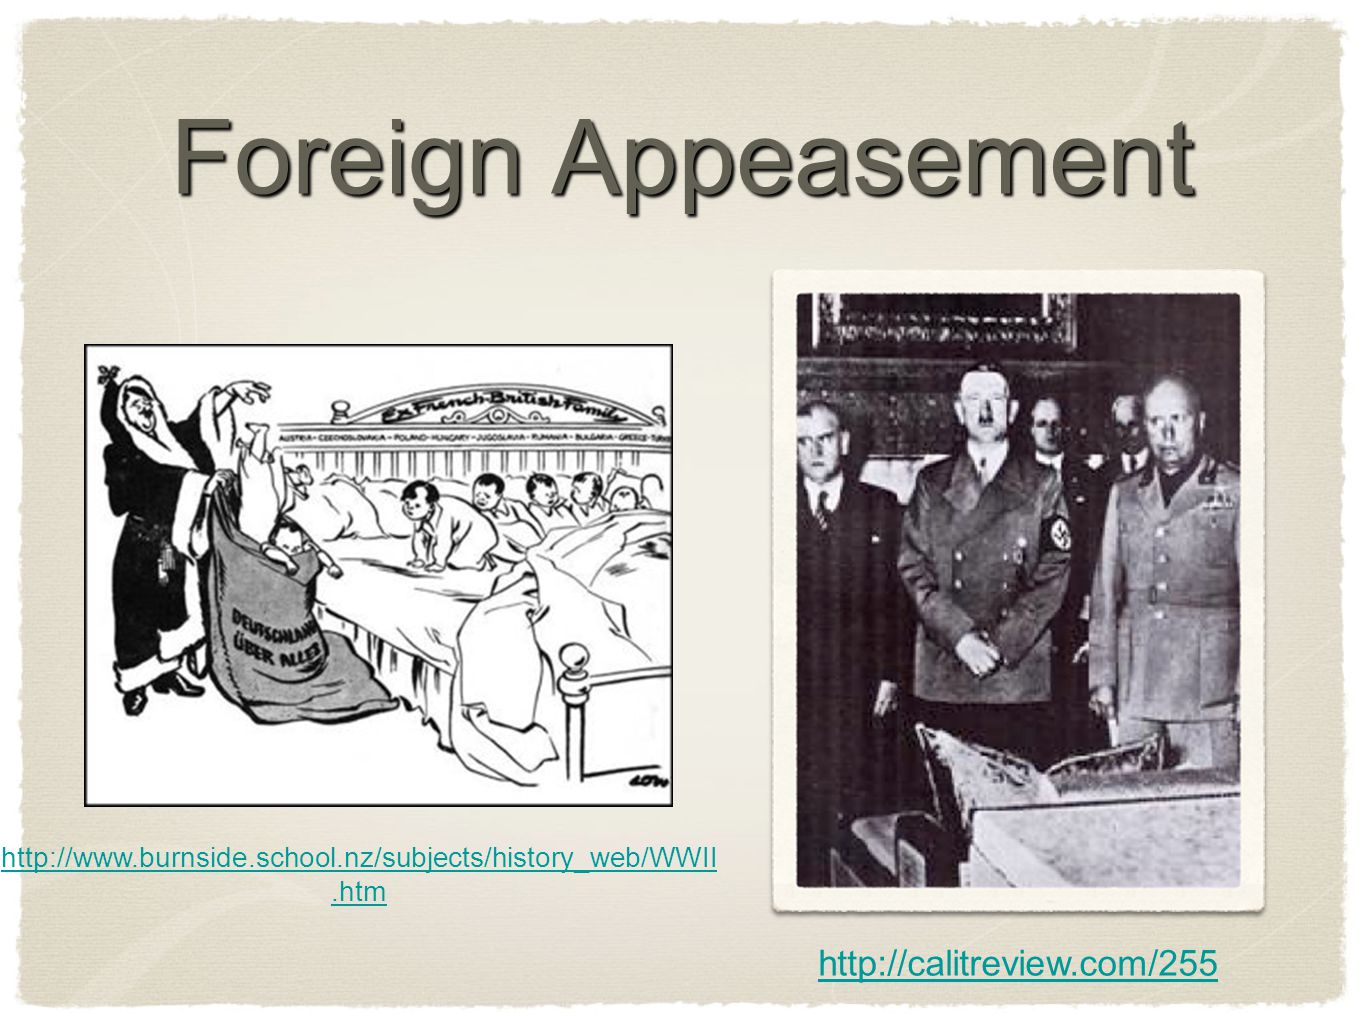 Foreign Appeasement http://www.burnside.school.nz/subjects/history_web/WWII.htm http://calitreview.com/255